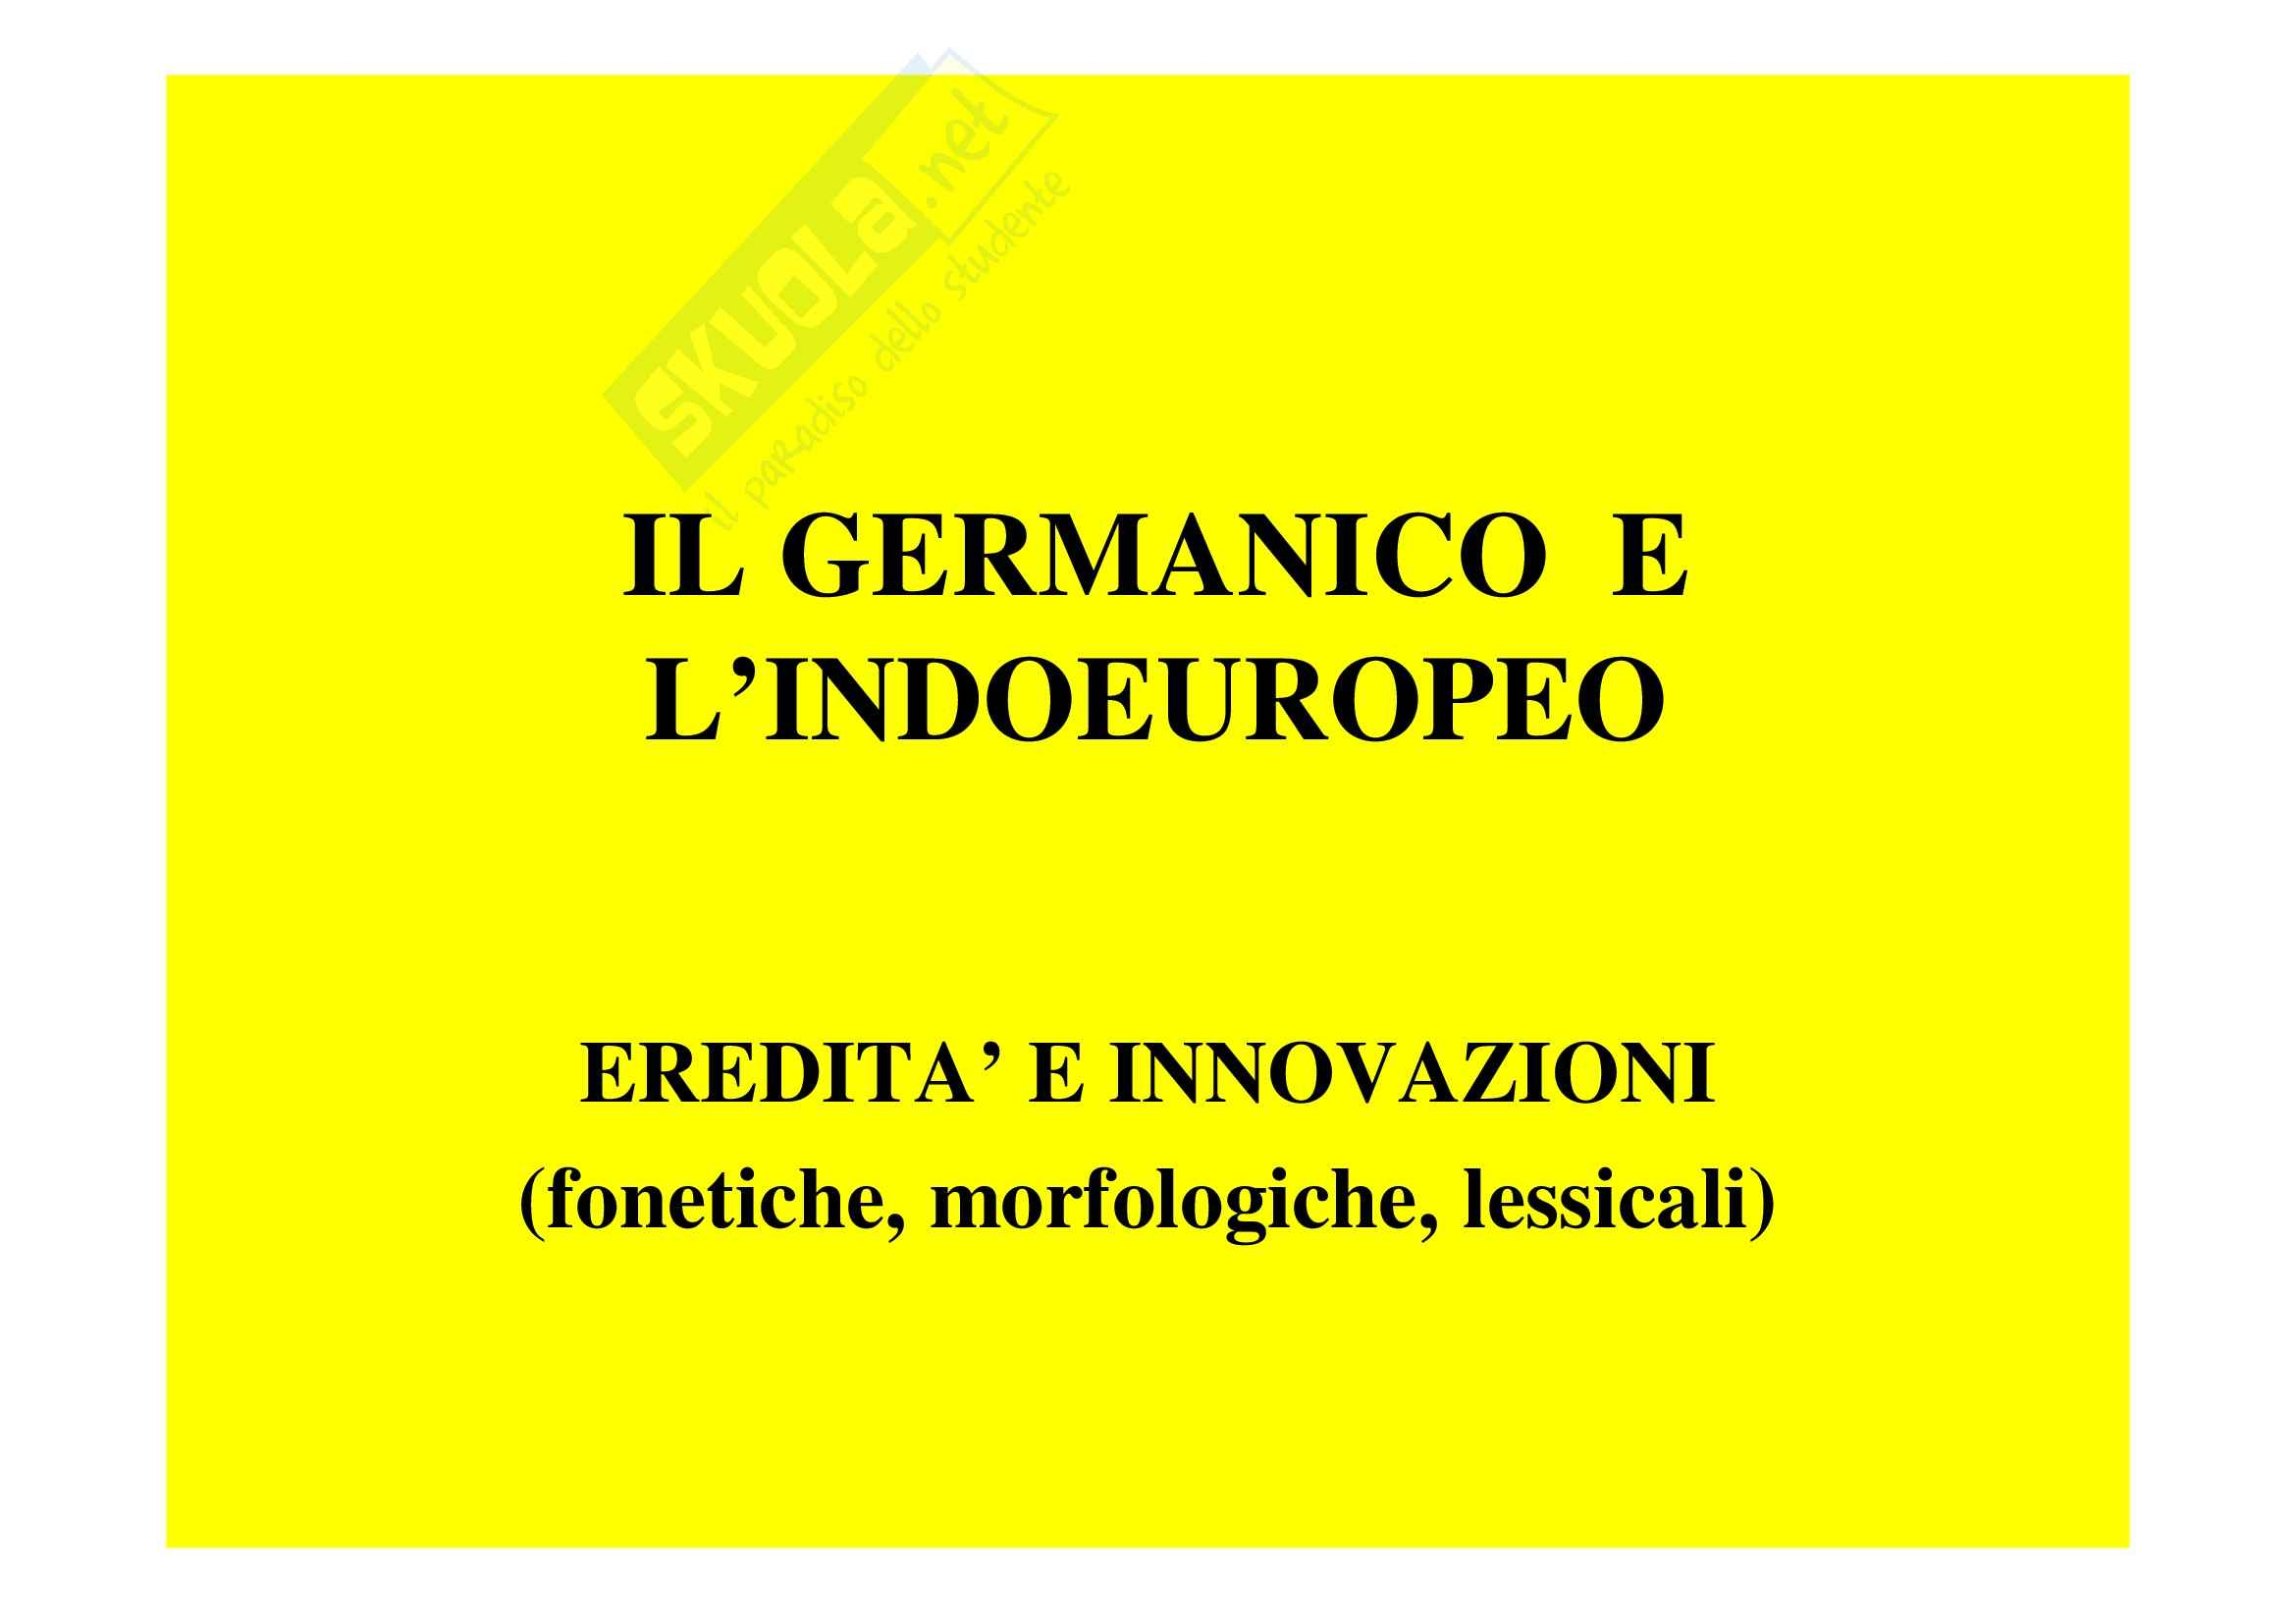 Linguistica germanica - germanico e indoeuropeo